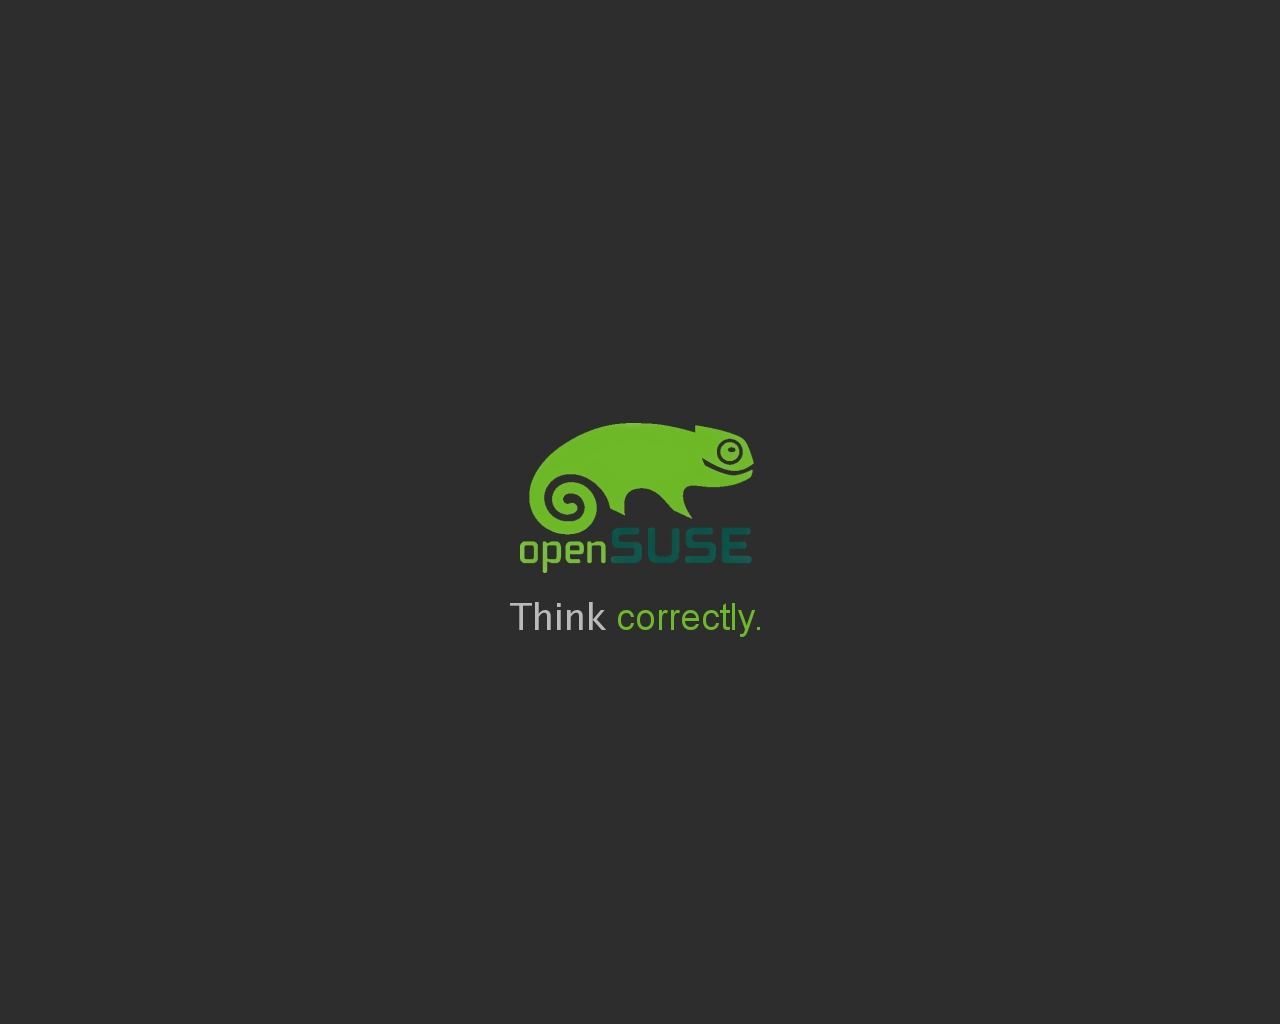 think linux wallpaper by - photo #16